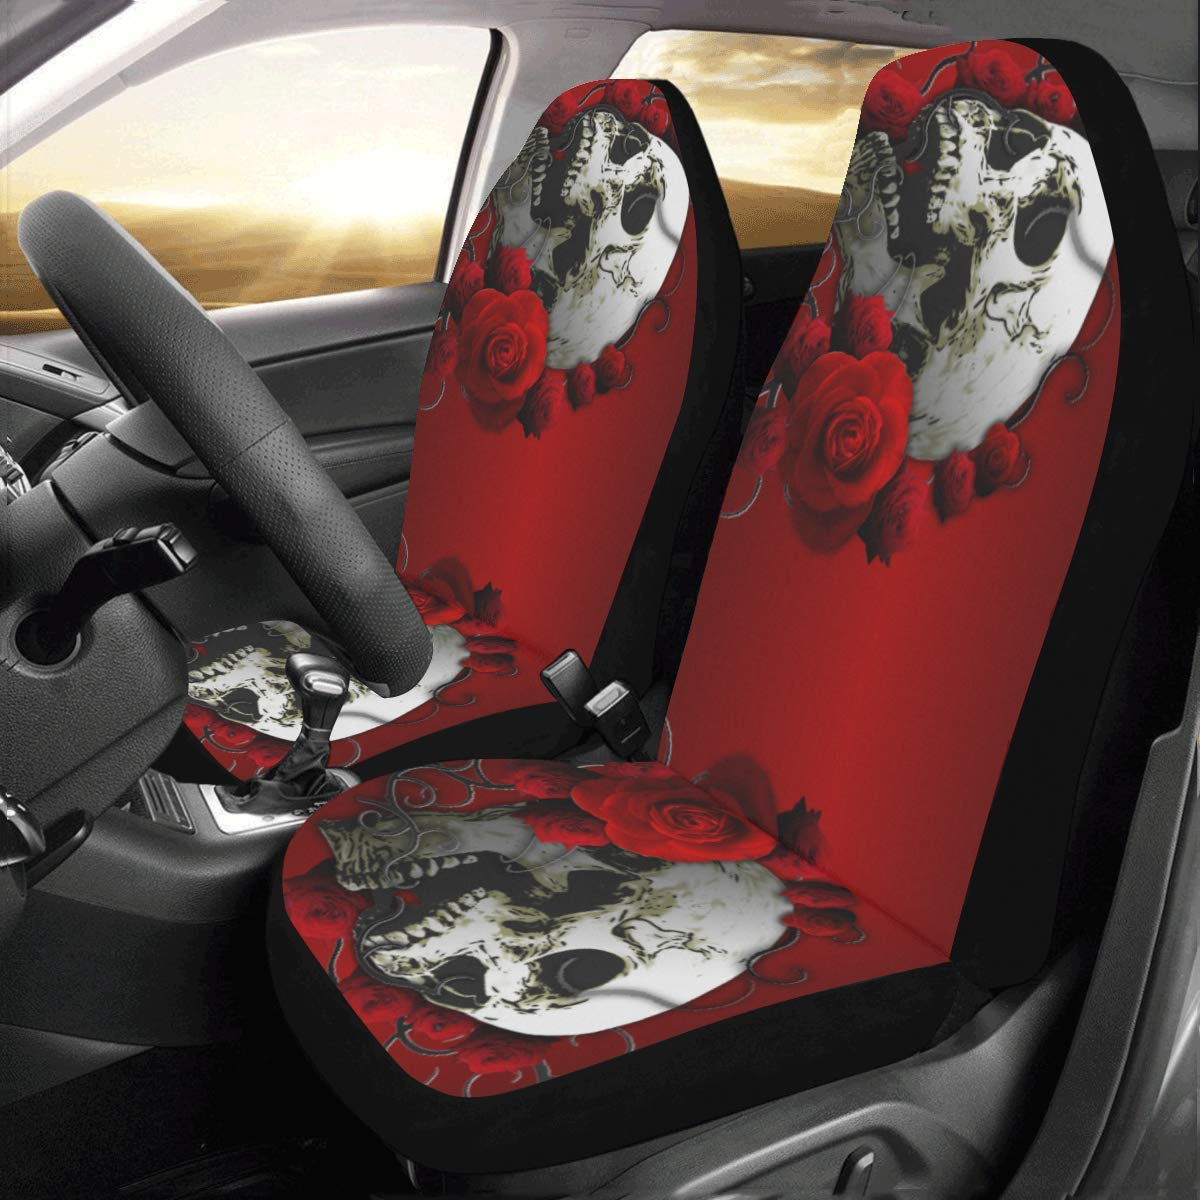 InterestPrint Universal Skull and Flowers Two Front Car Seat Covers Set -100% Breathable